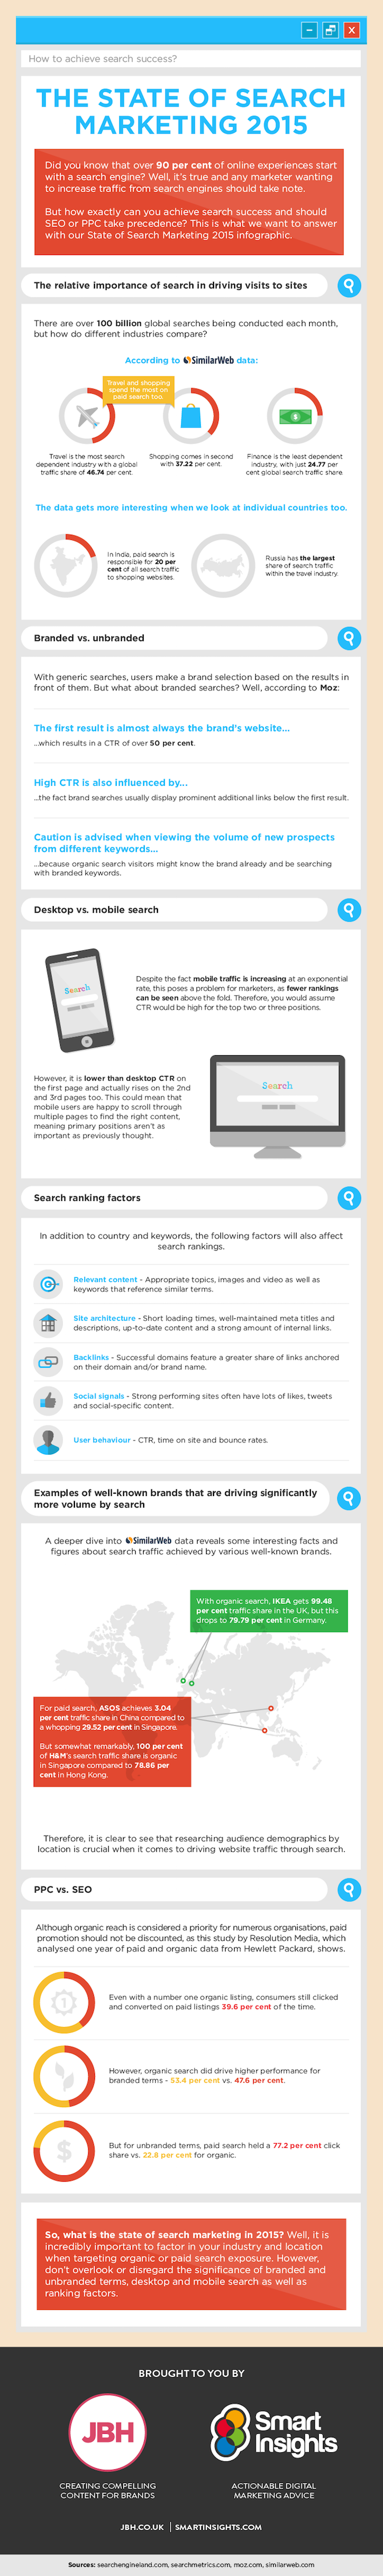 state-of-search-marketing-infographic